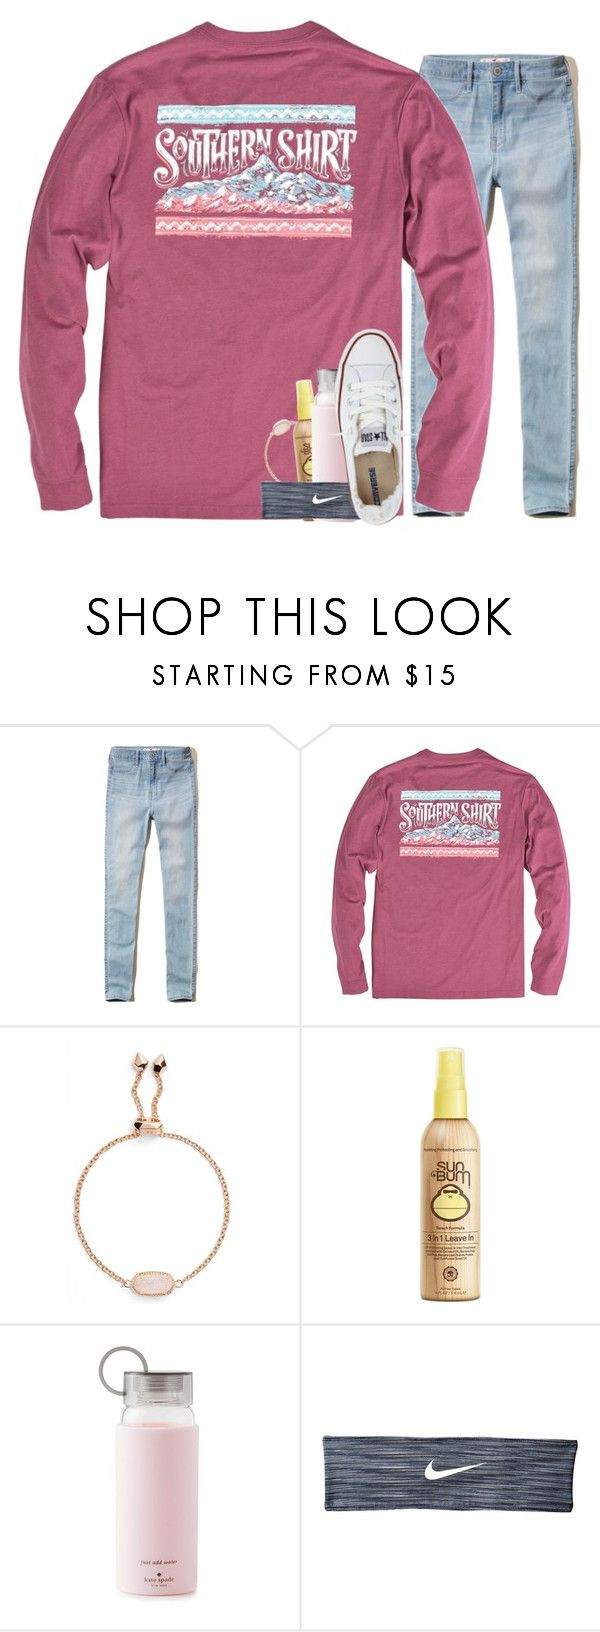 """""""s is for southern shirts """" by madelinelurene ❤ liked on Polyvore featuring Hollister Co., Kendra Scott, Sun Bum, Kate Spade, NIKE and Converse"""